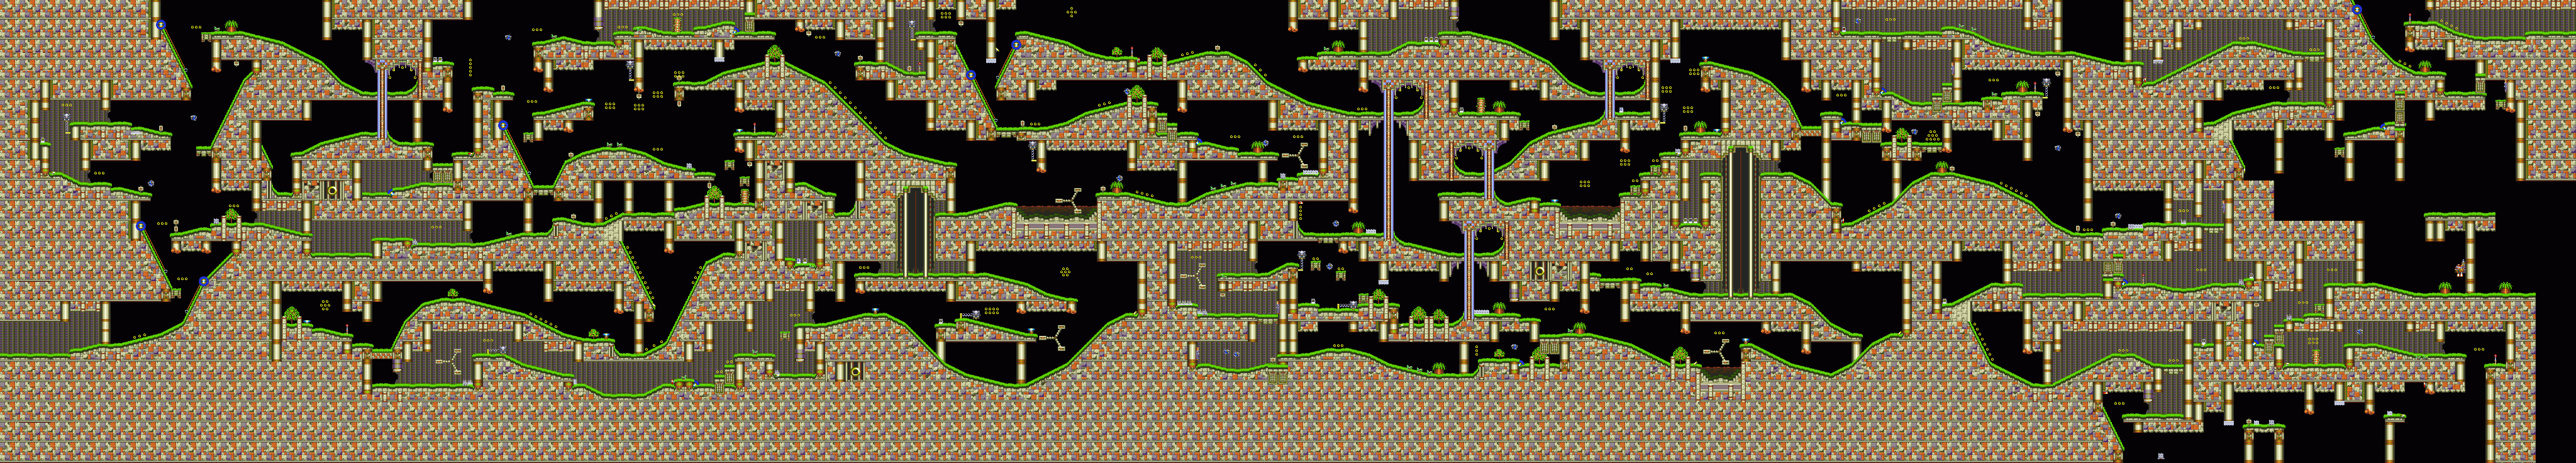 Sonic 3 Maps - The Sonic Center